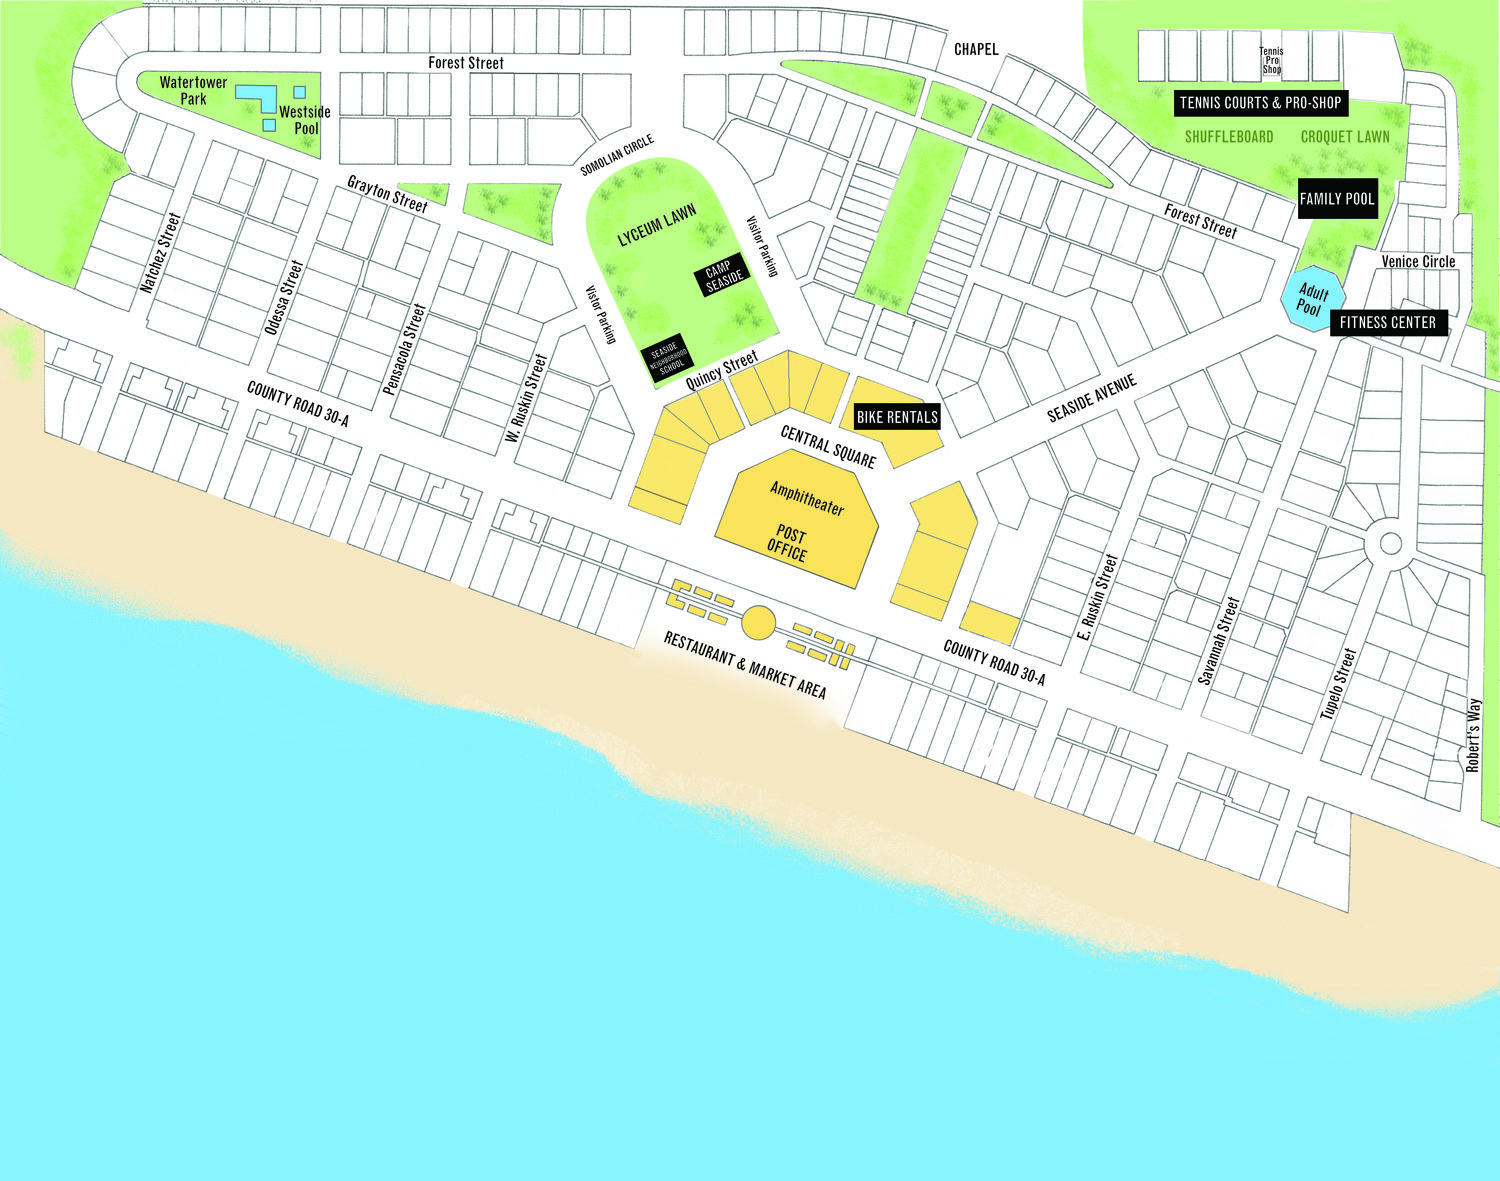 Map Of Seaside Florida.Seaside Florida Is One Of The Most Influetial New Usbanist Projects